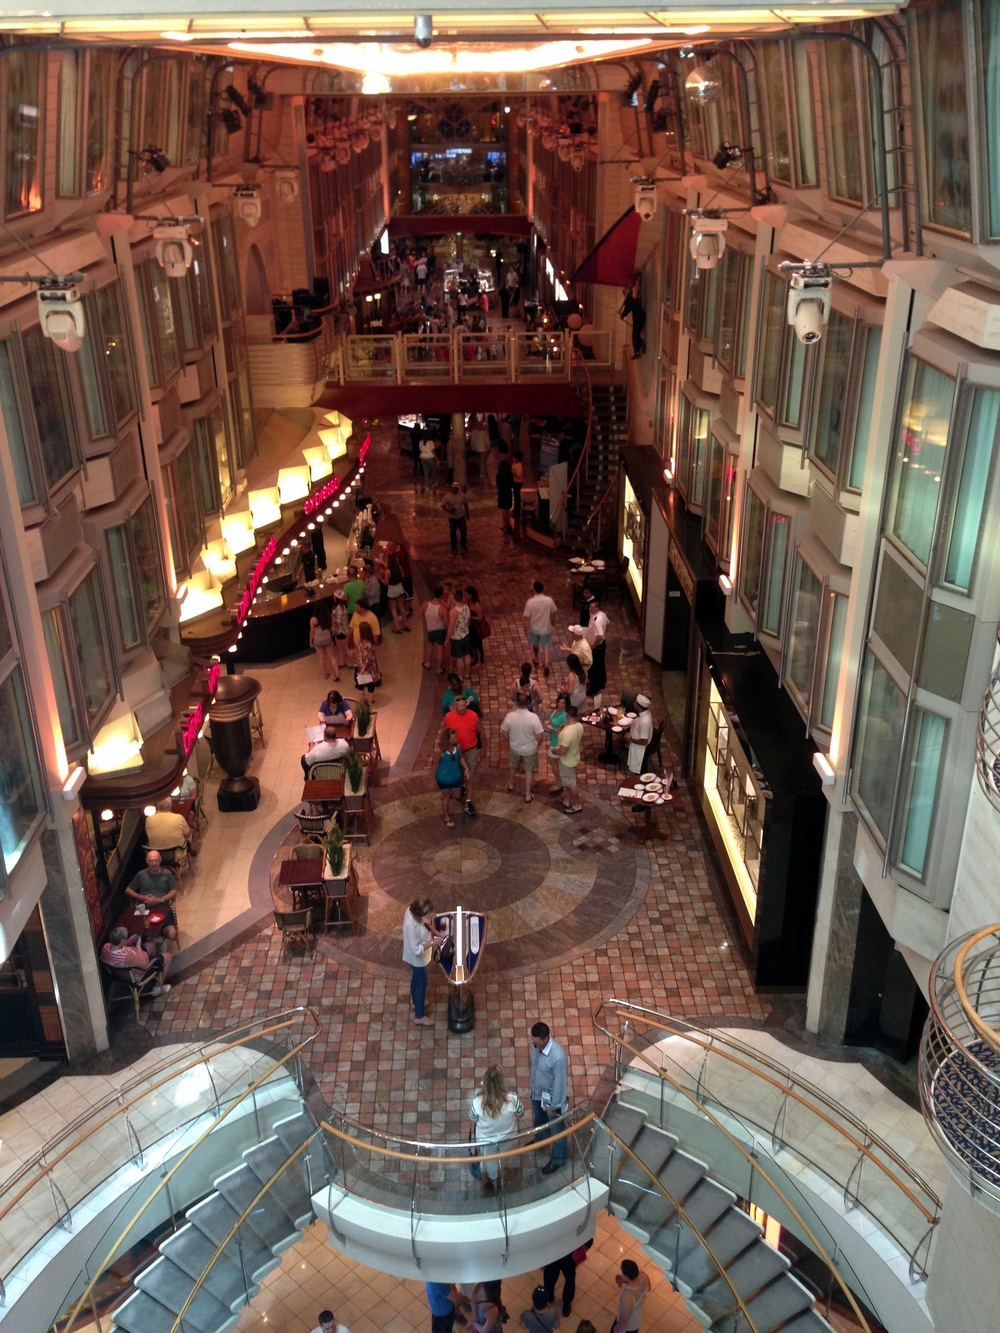 This is the Royal Promenade--basically Main Street inside the ship.